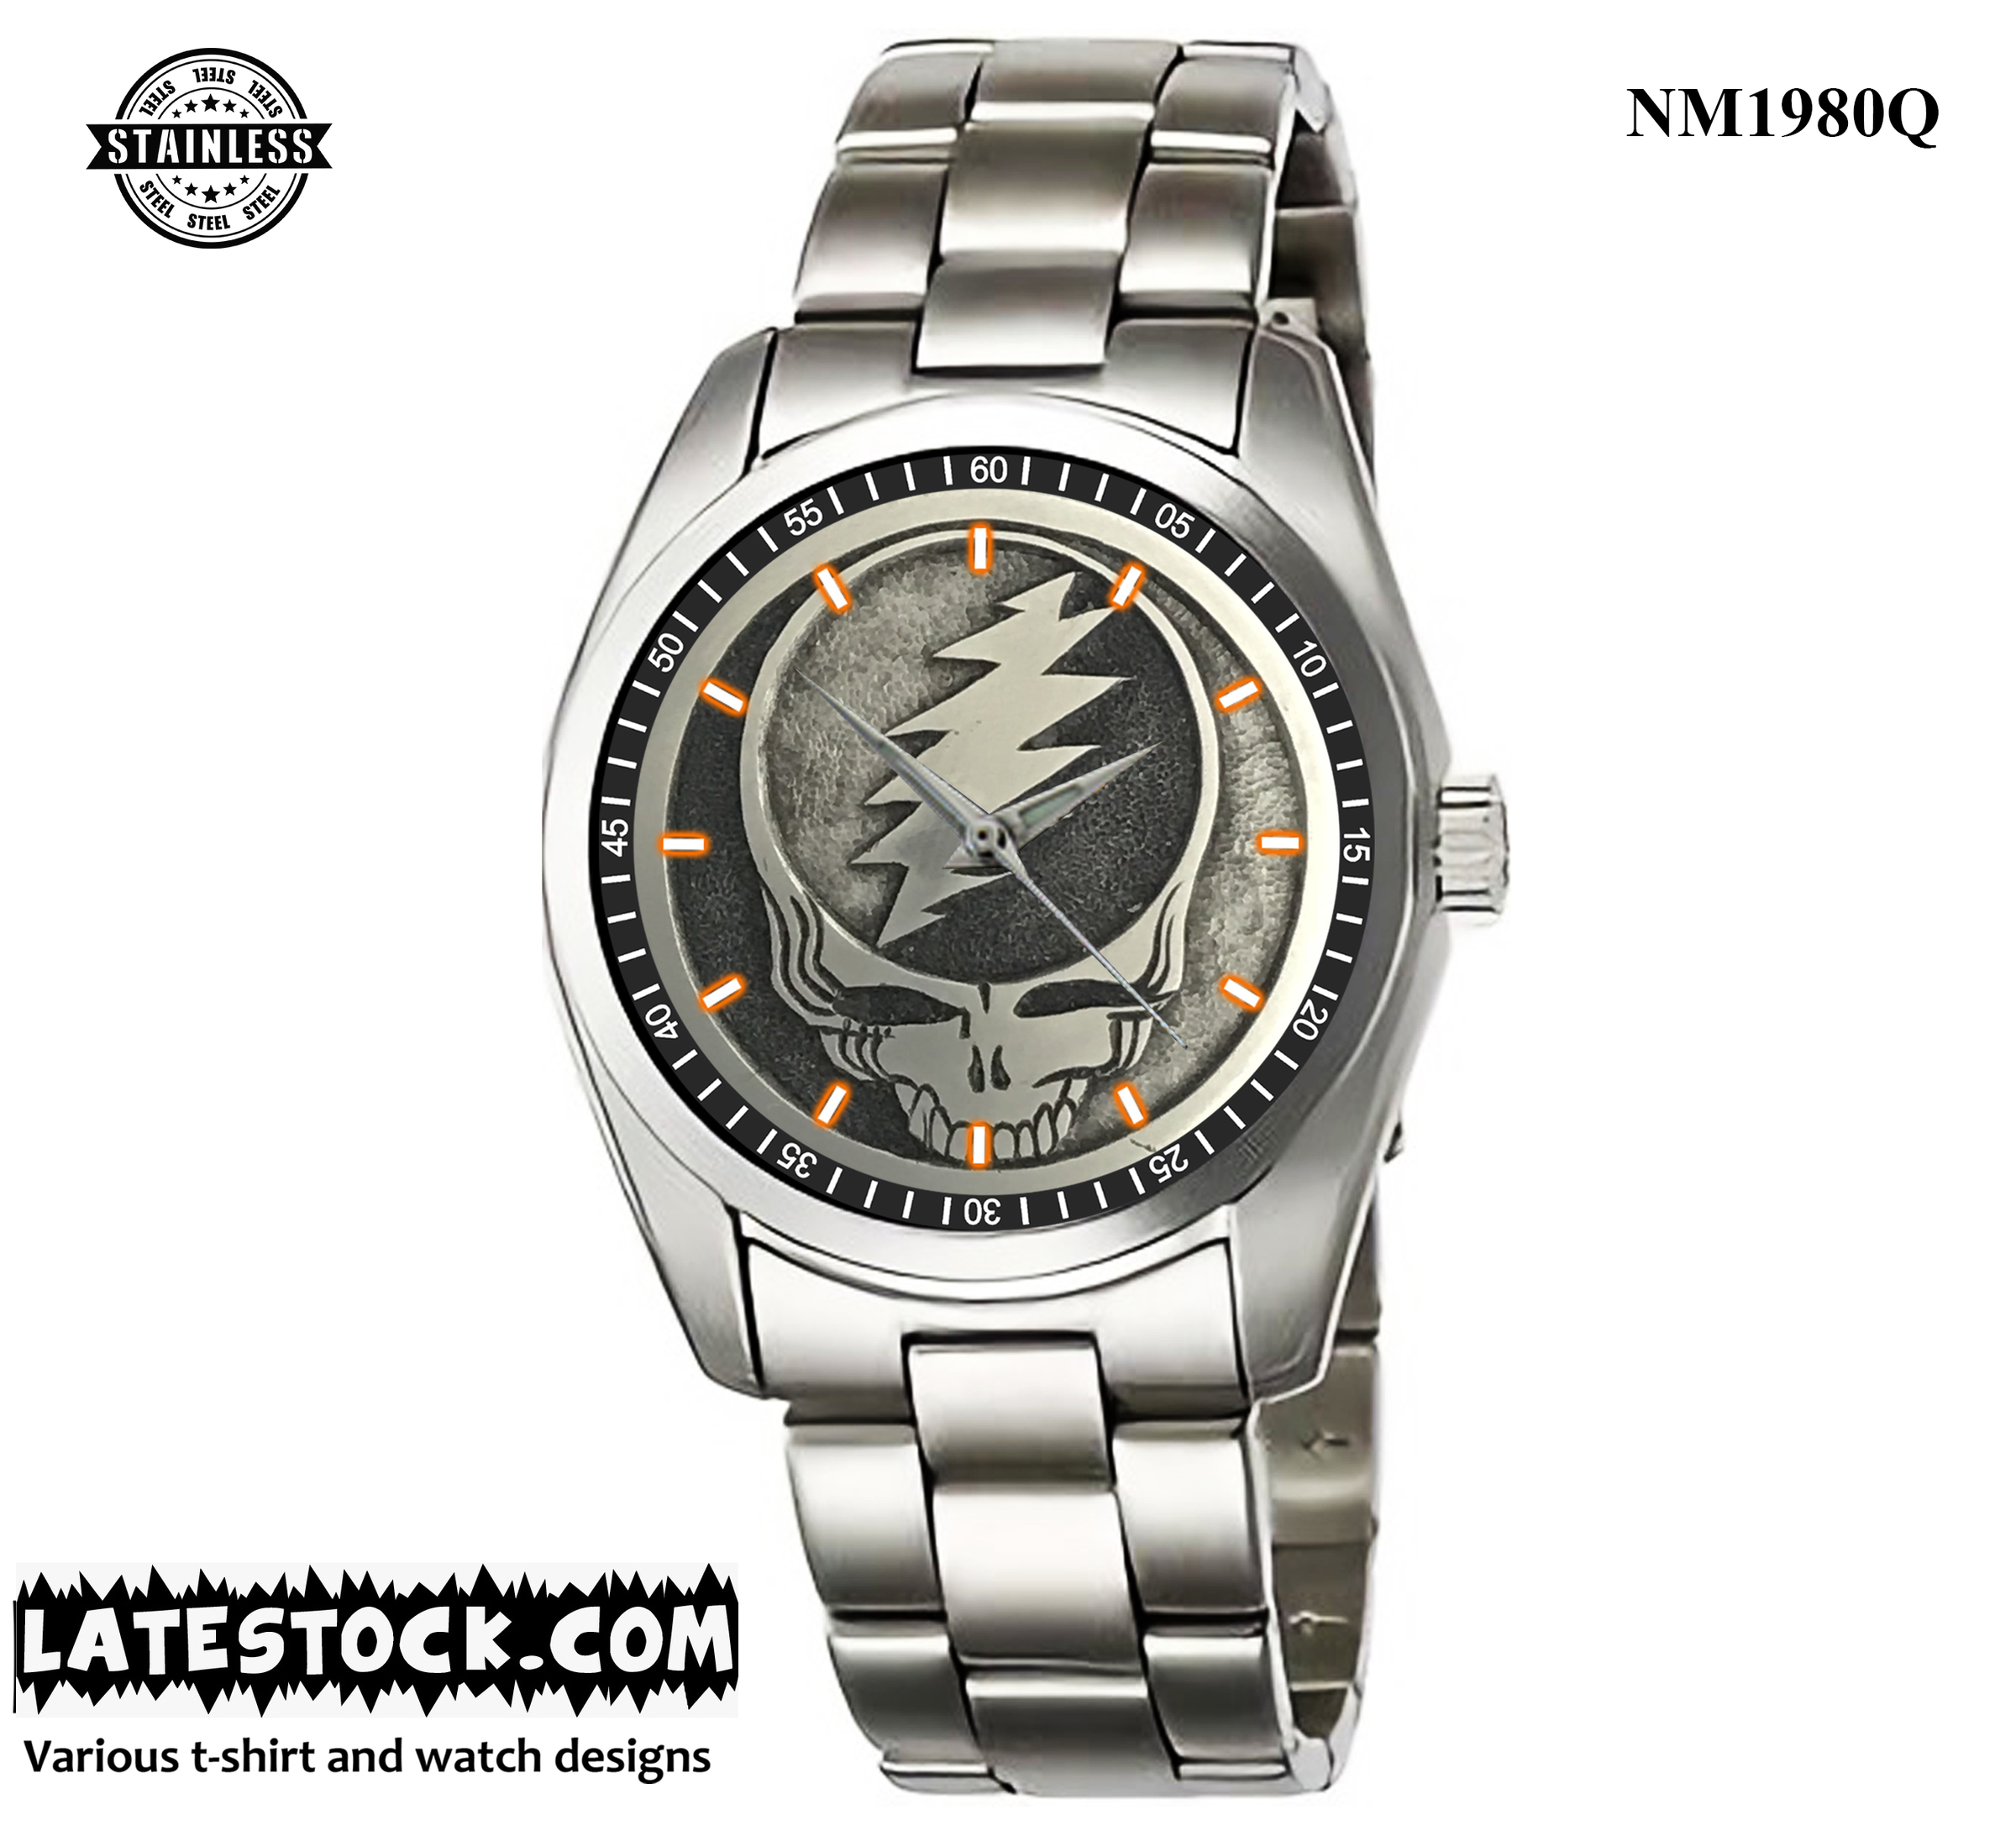 2.1 RARE..!!!final design in our collectable Grateful Dead abel sport metal watch.jpg